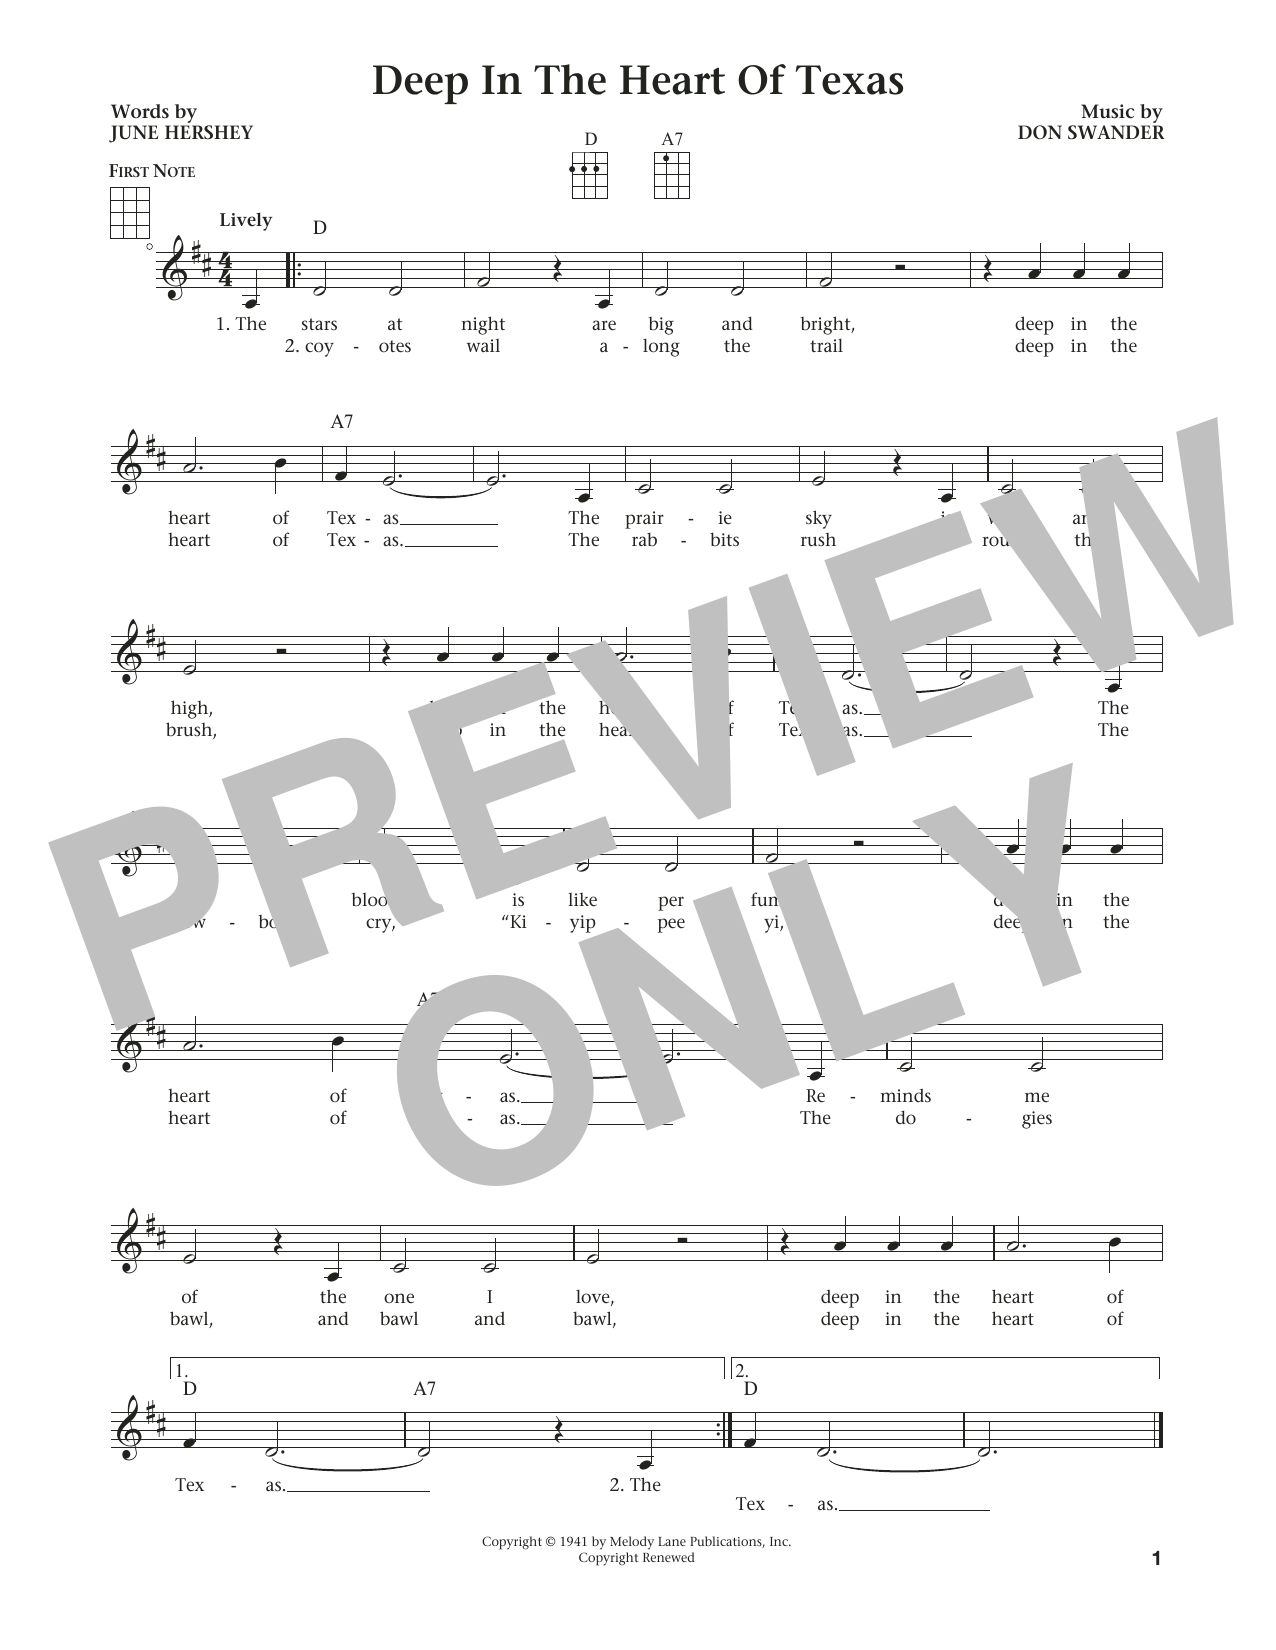 Deep In The Heart Of Texas (from The Daily Ukulele) (arr. Liz and Jim Beloff) (Ukulele)